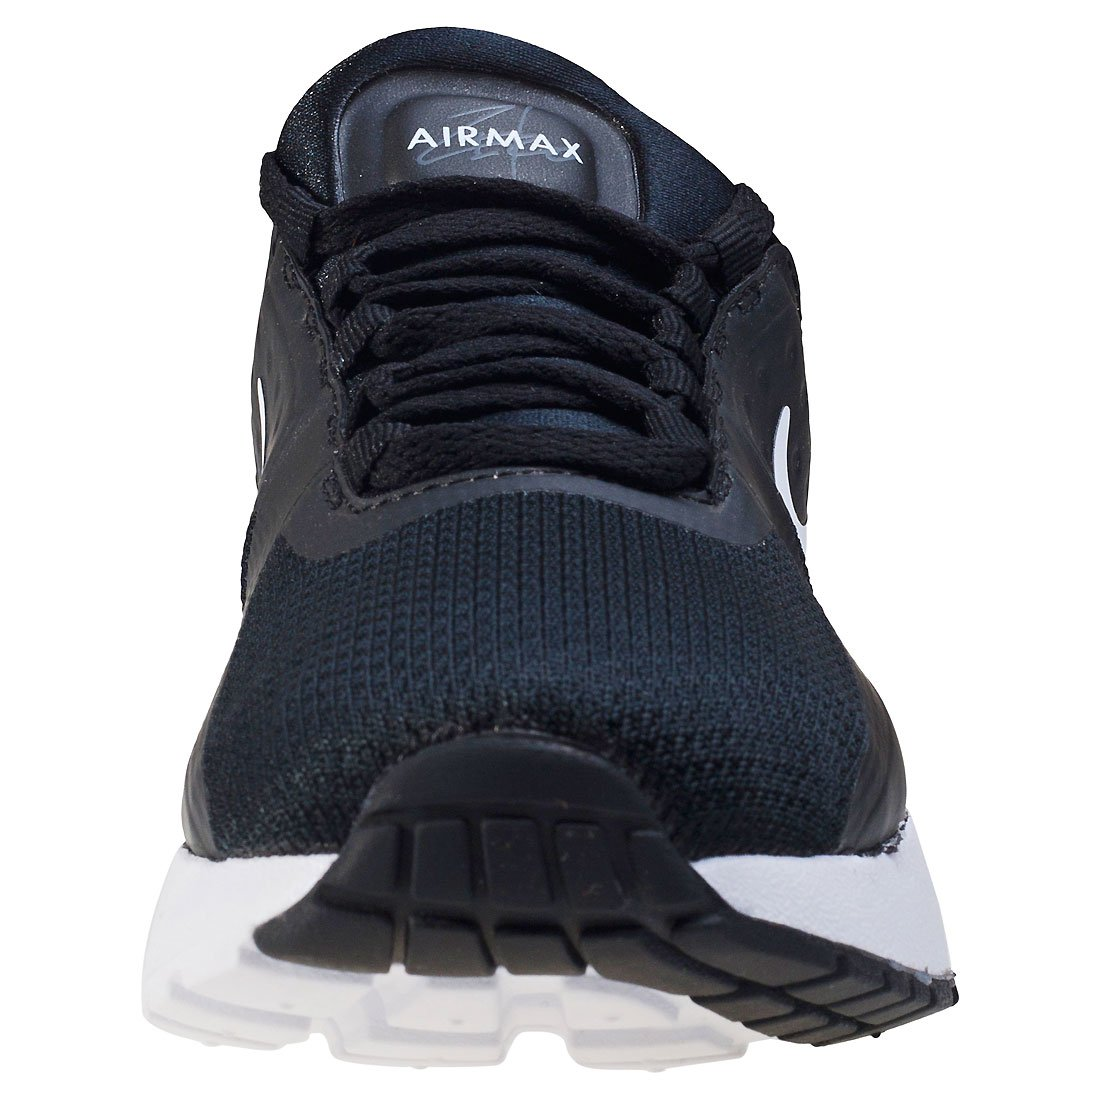 5f1b8bd35e Amazon.com | Nike Kids Air Max Zero Essential Black/white/Dark Grey  881226-002 | Sneakers